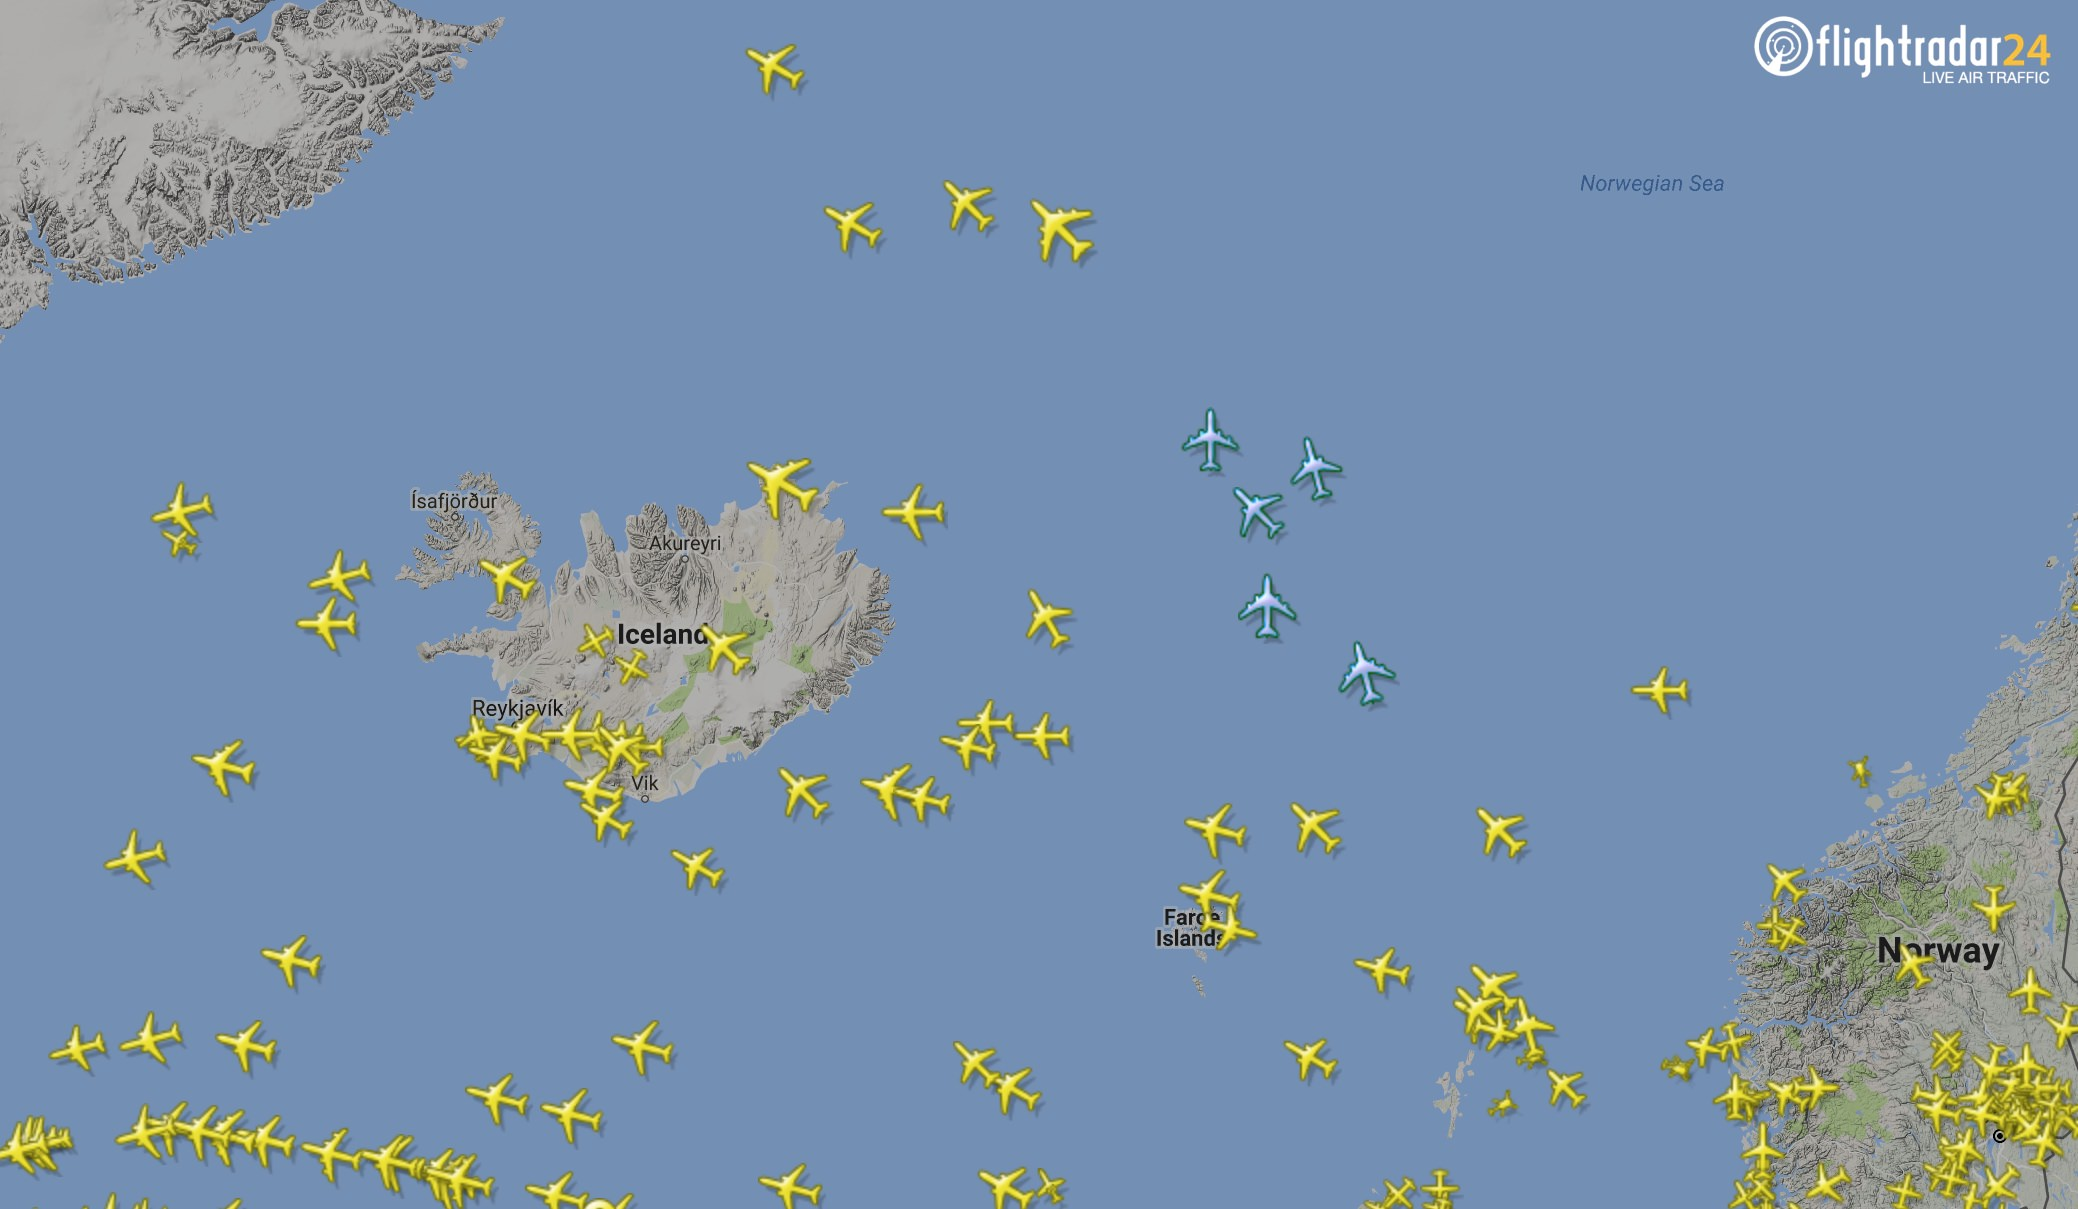 Look for the blue icons to see flights tracked by our Wave Glider—FloatRadar24